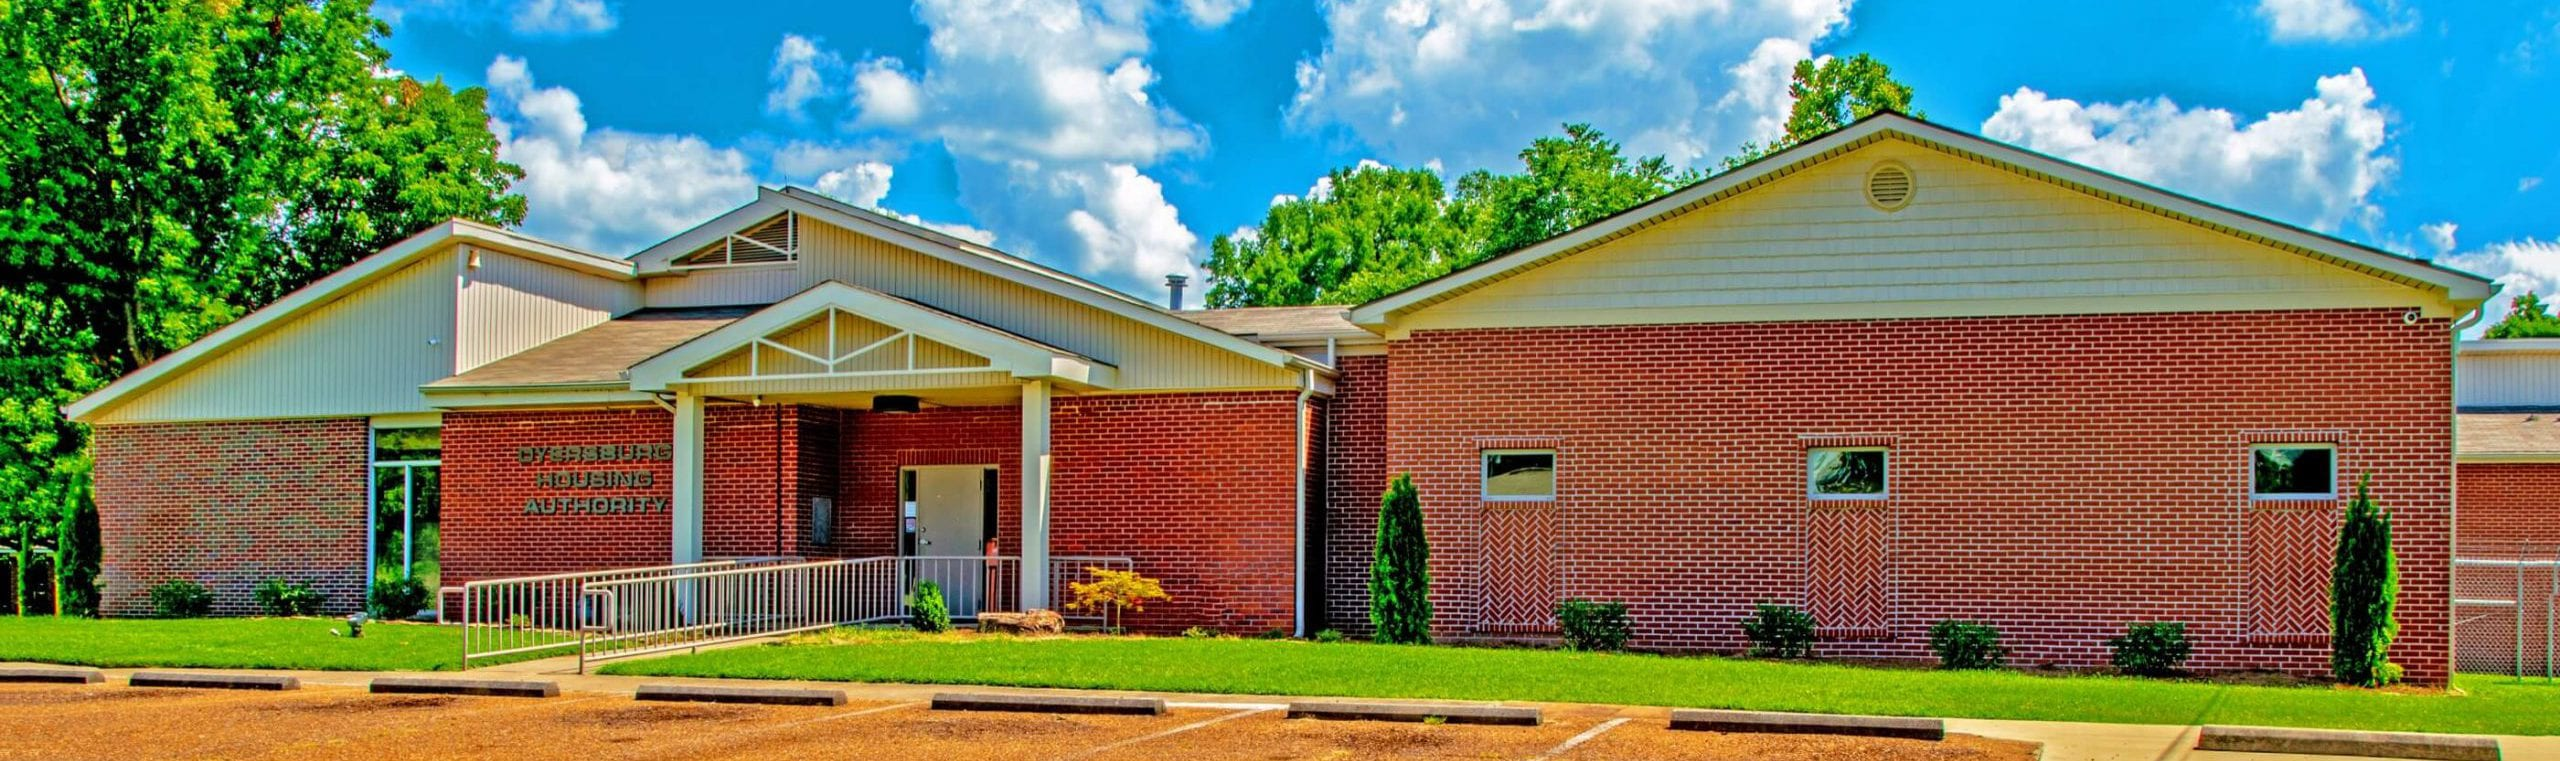 Affordable Housing in West Tennessee | Dyersburg Housing Authority